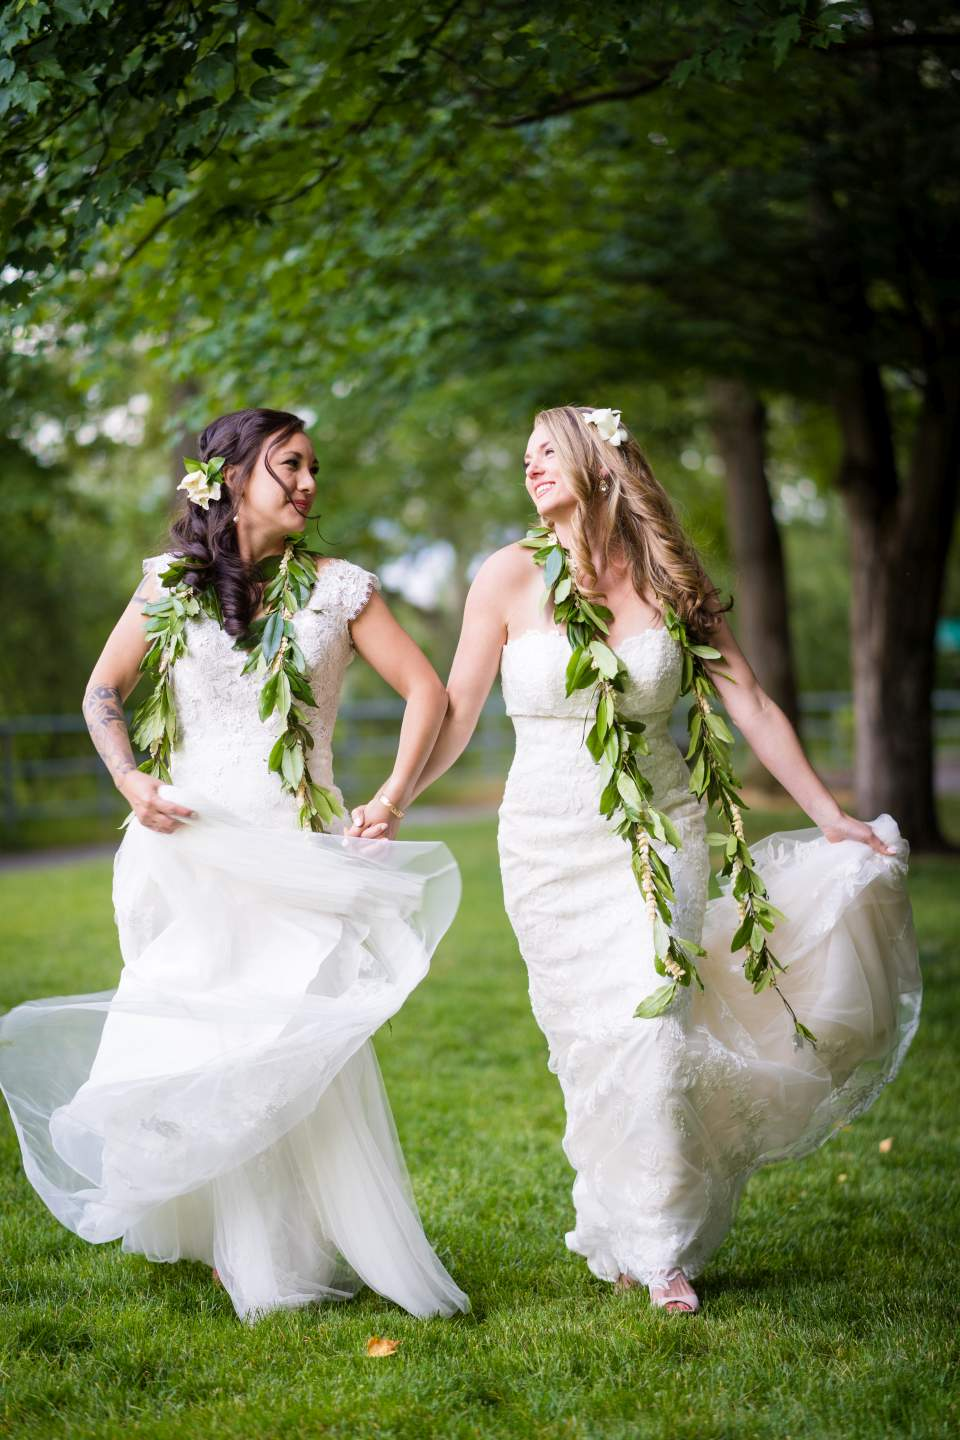 cute genuine portrait of brides running